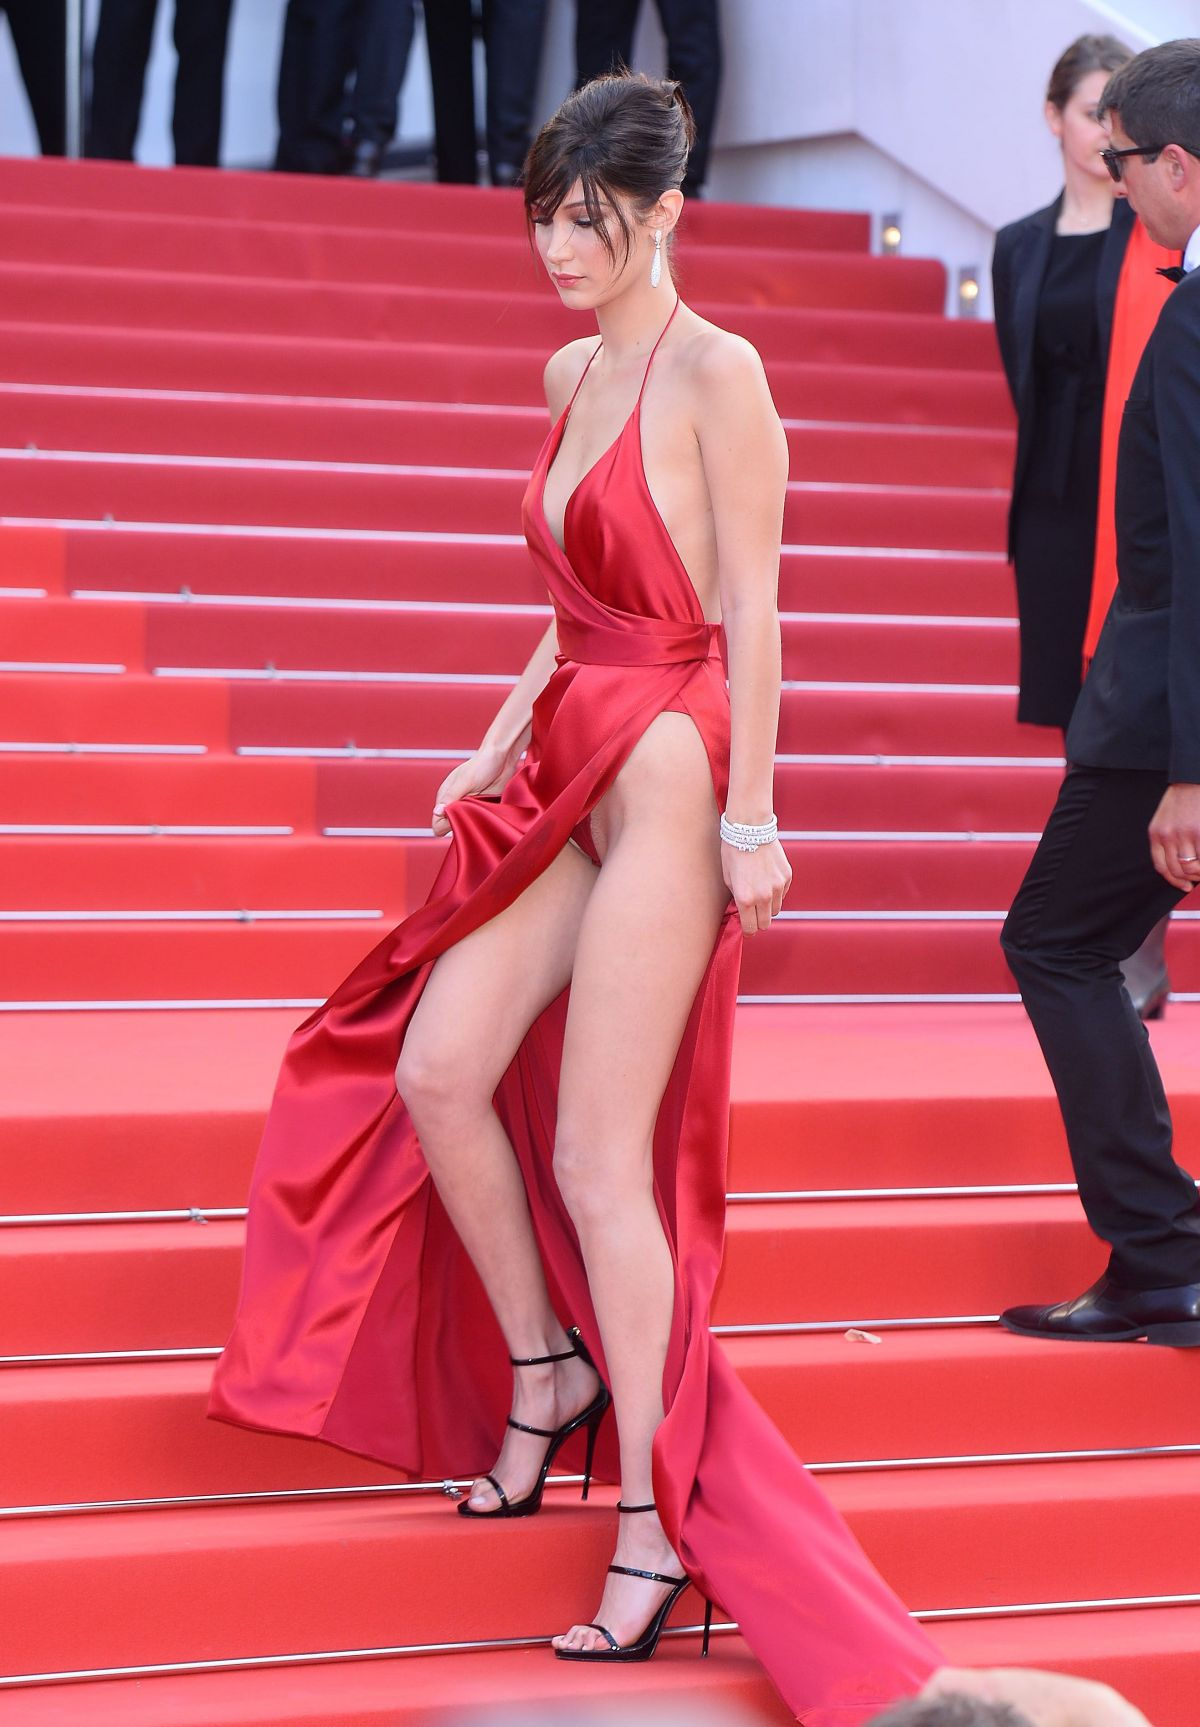 bella-hadid-at-la-fille-inconnue-premiere-at-69th-annual-cannes-fil-festival-05-18-2016_5